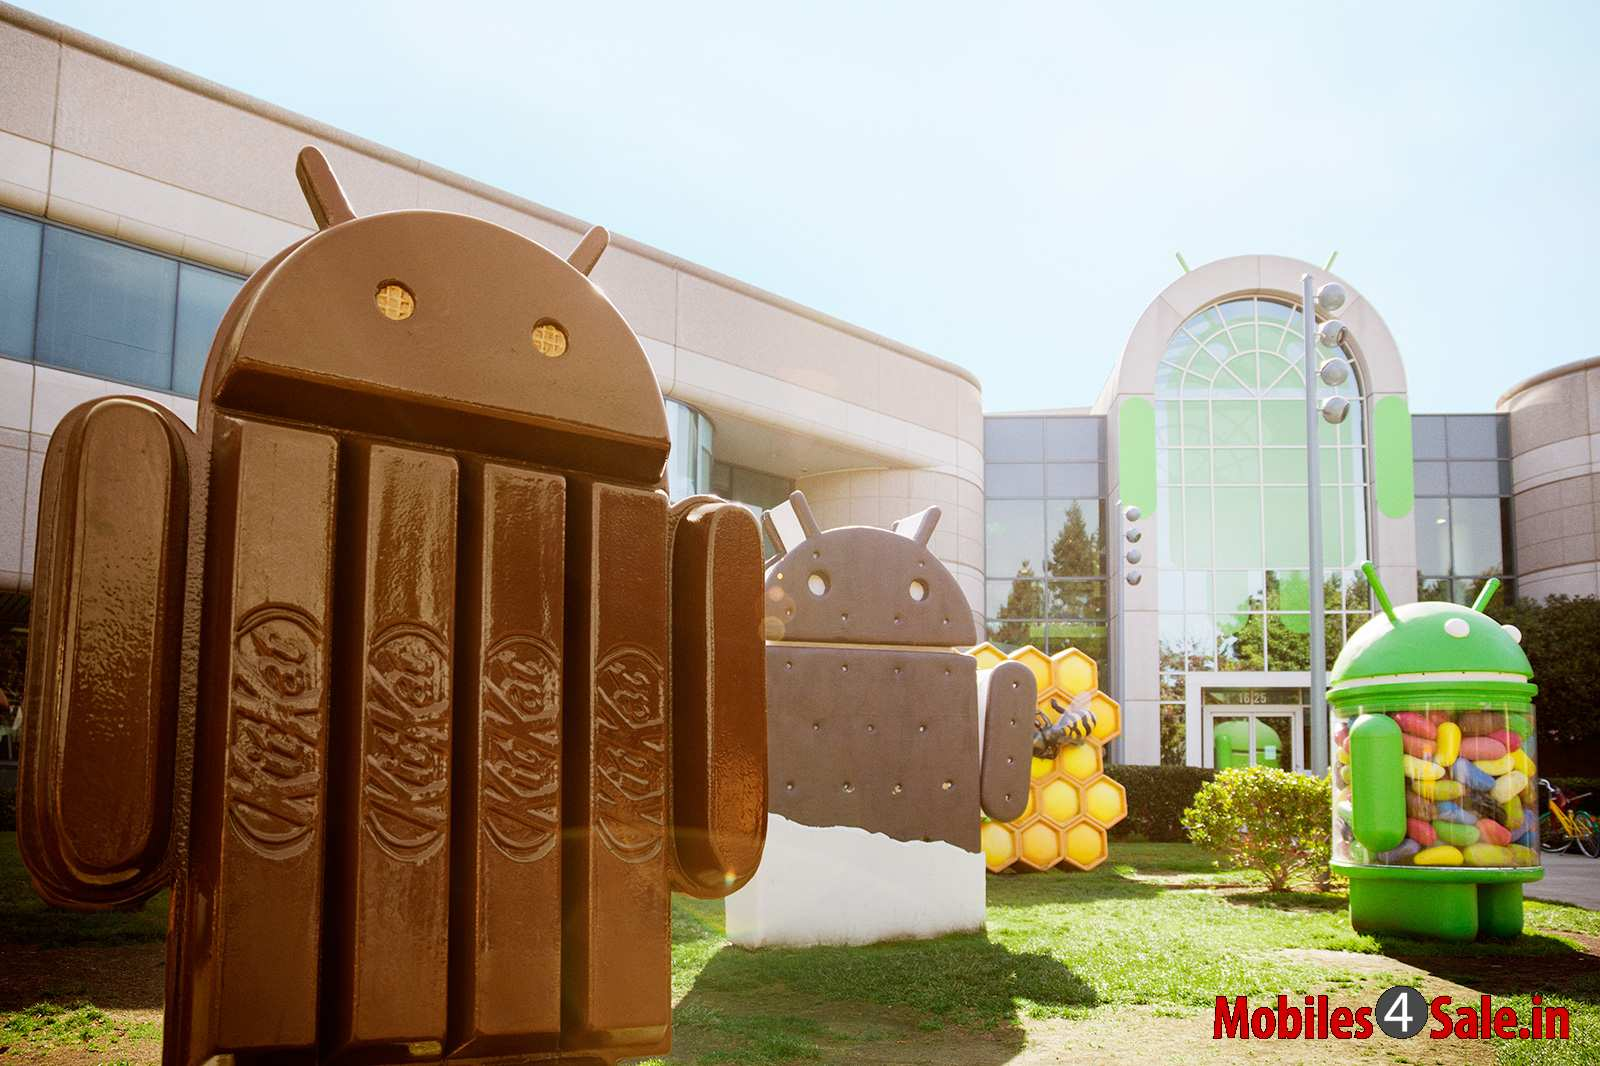 Android from Google